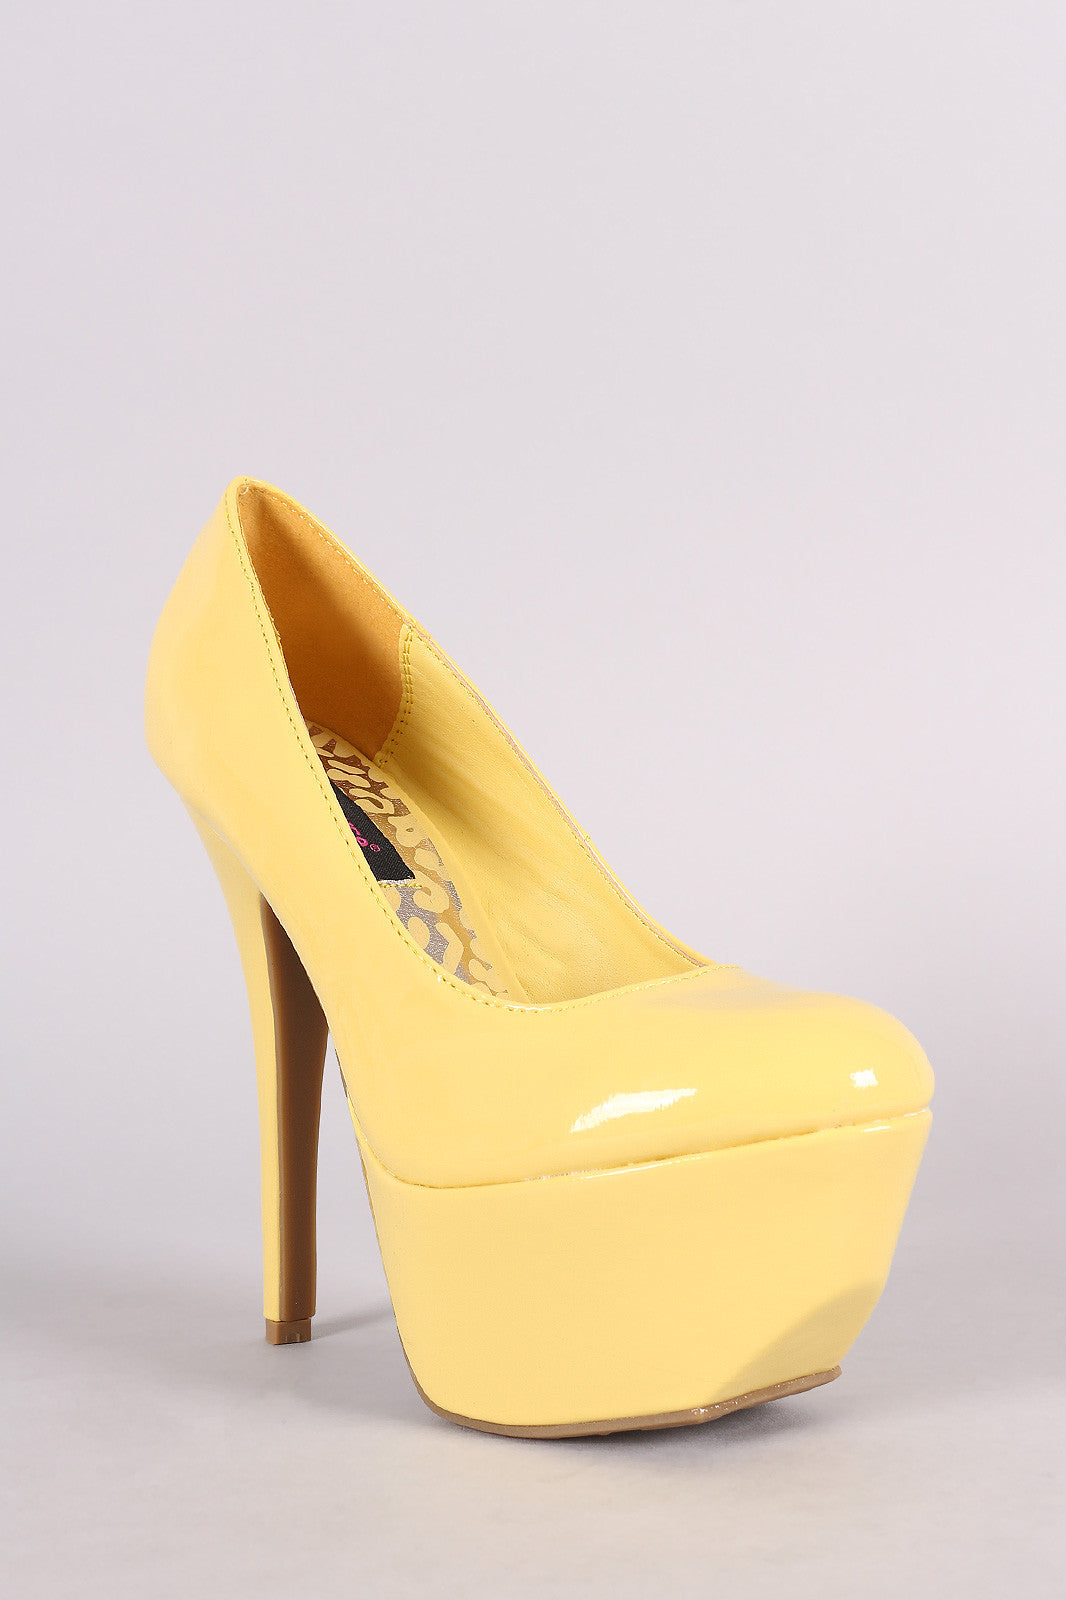 Dollhouse Patent Platform Pump - Thick 'N' Curvy Shop - 2